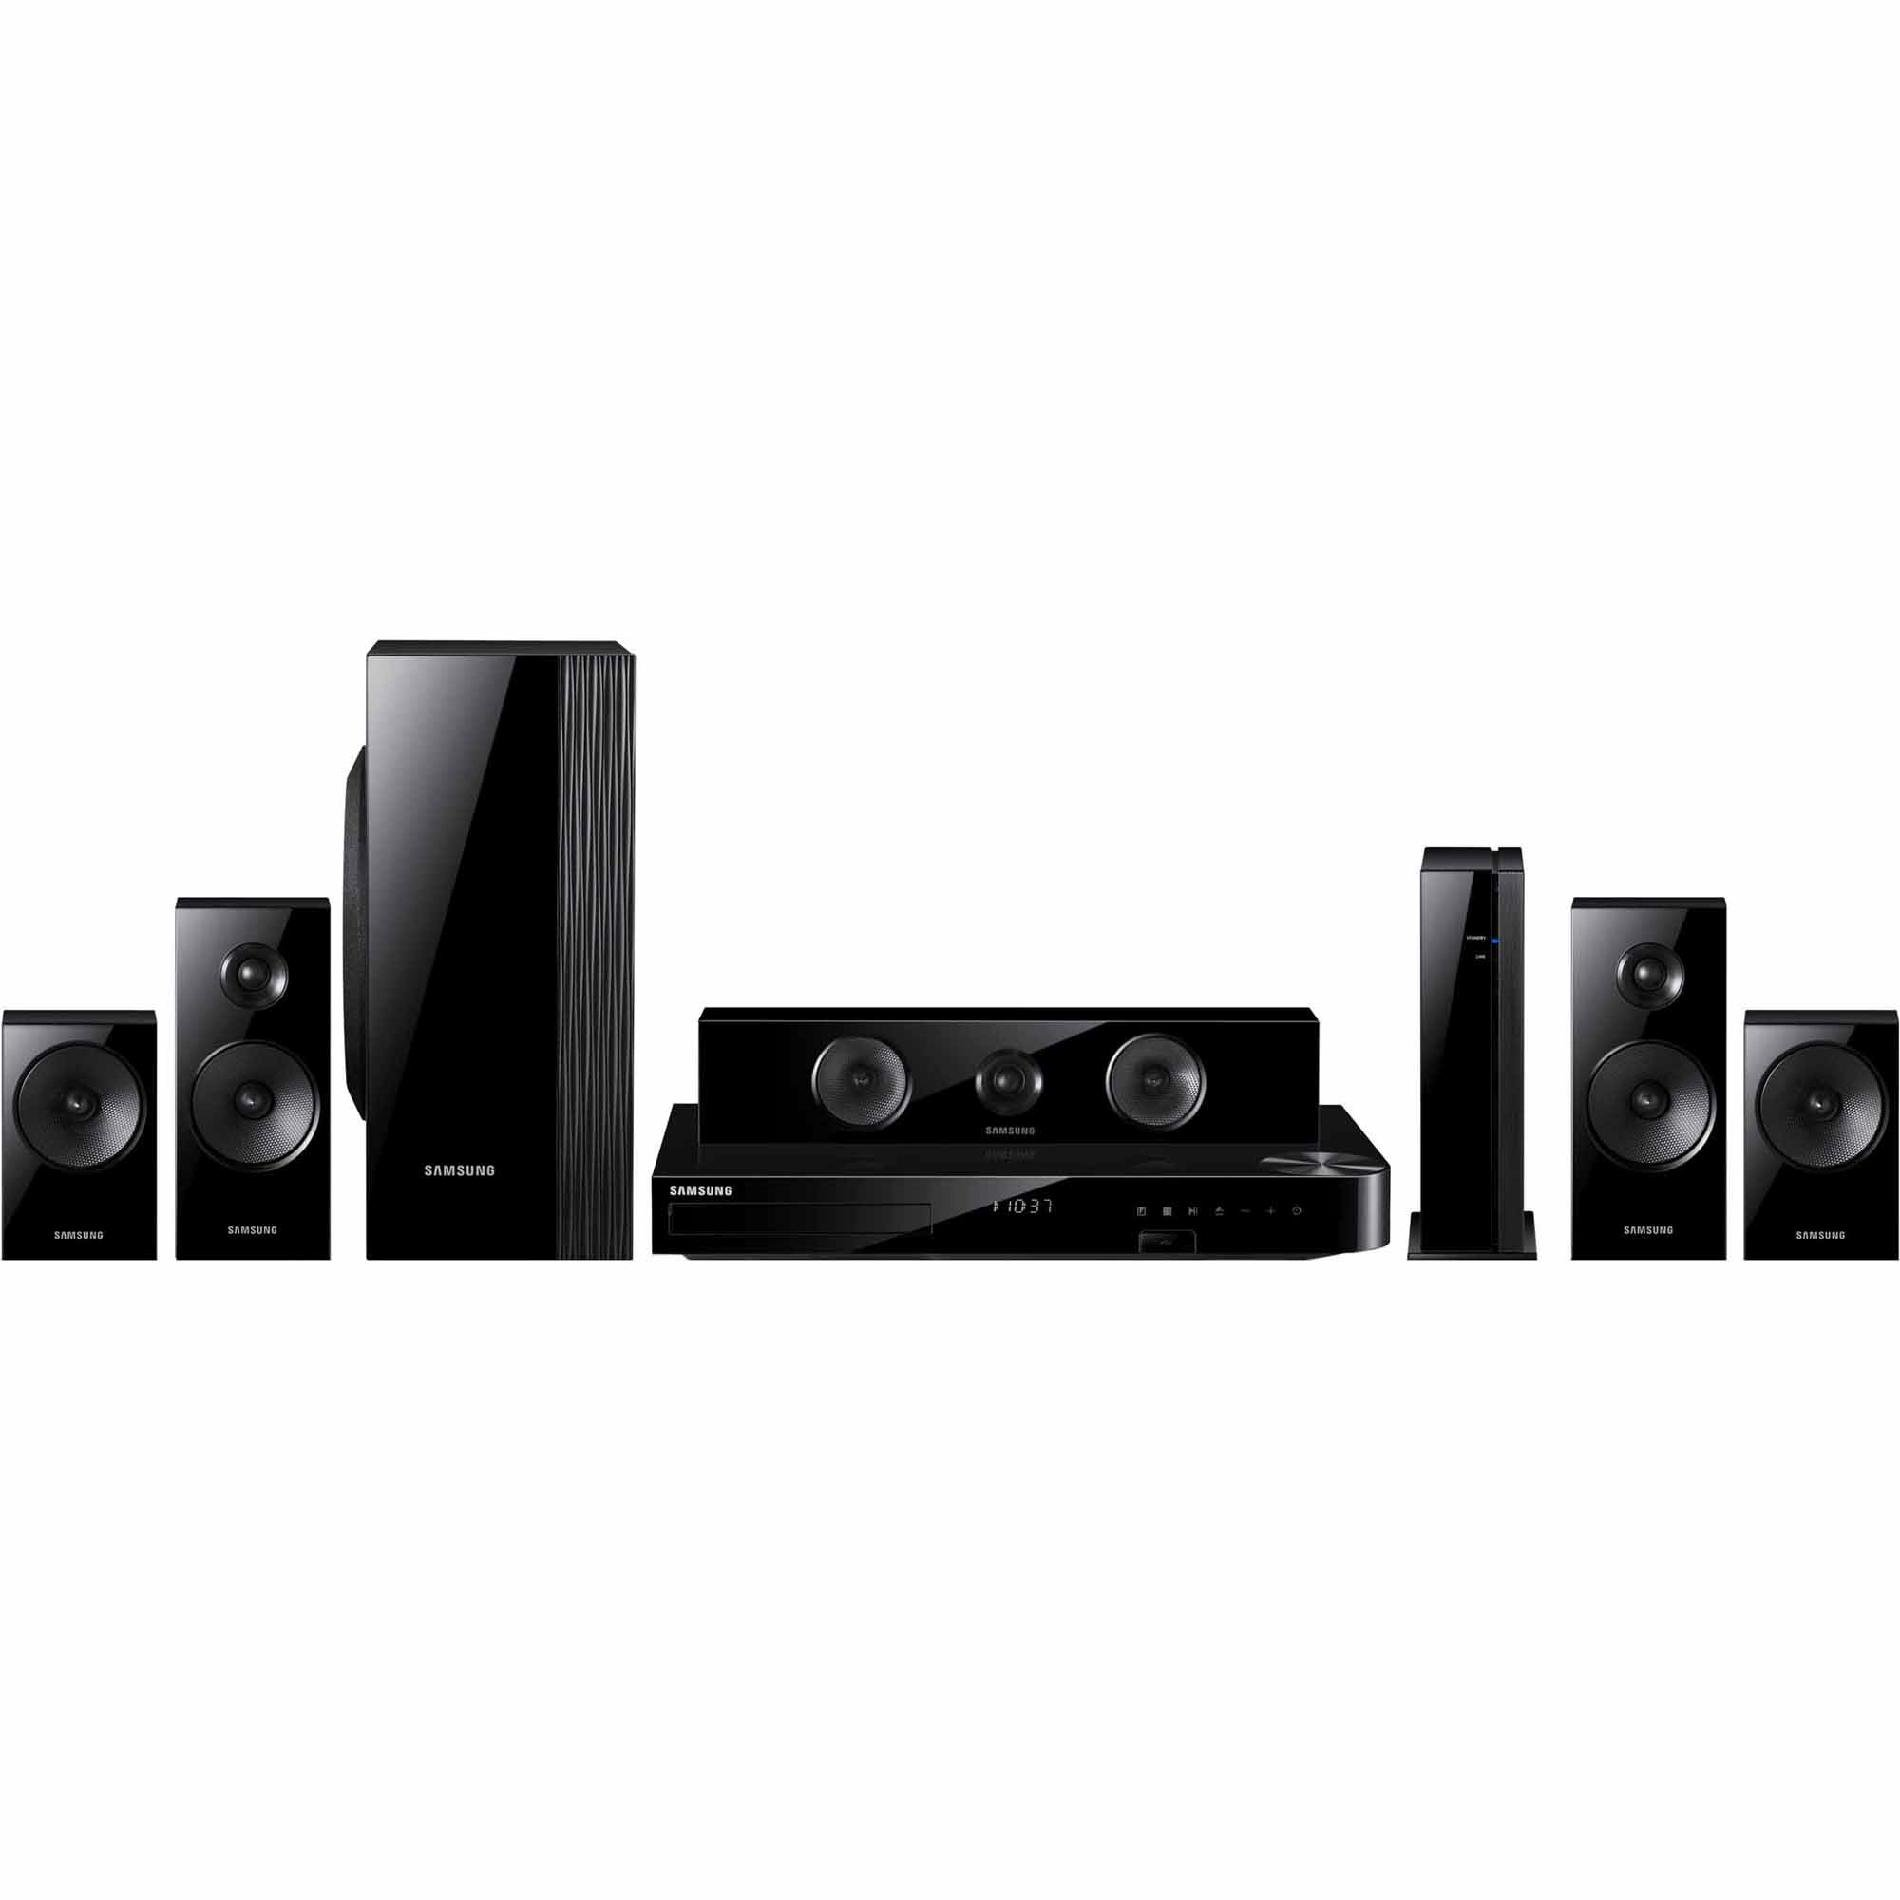 Samsung HT-H5500W-R 5.1 Channel 3D Blu-Ray Home Theater System Manufacturer Refurbished by Samsung